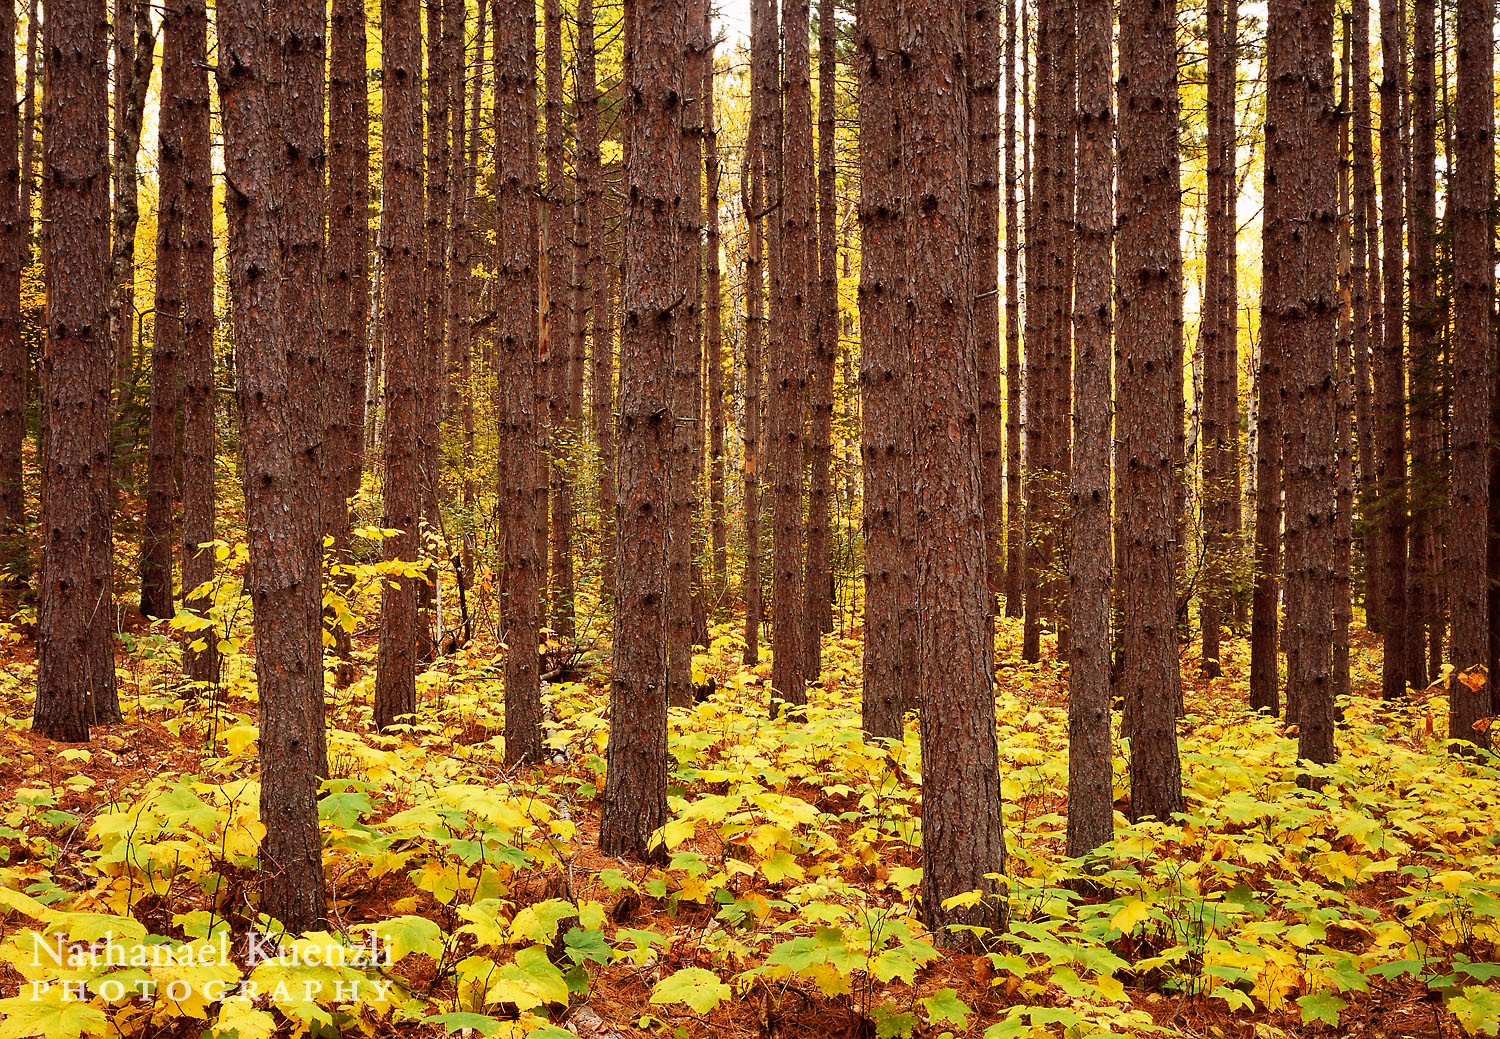 Autumn Pines, Superior National Forest, Minnesota, October 2008